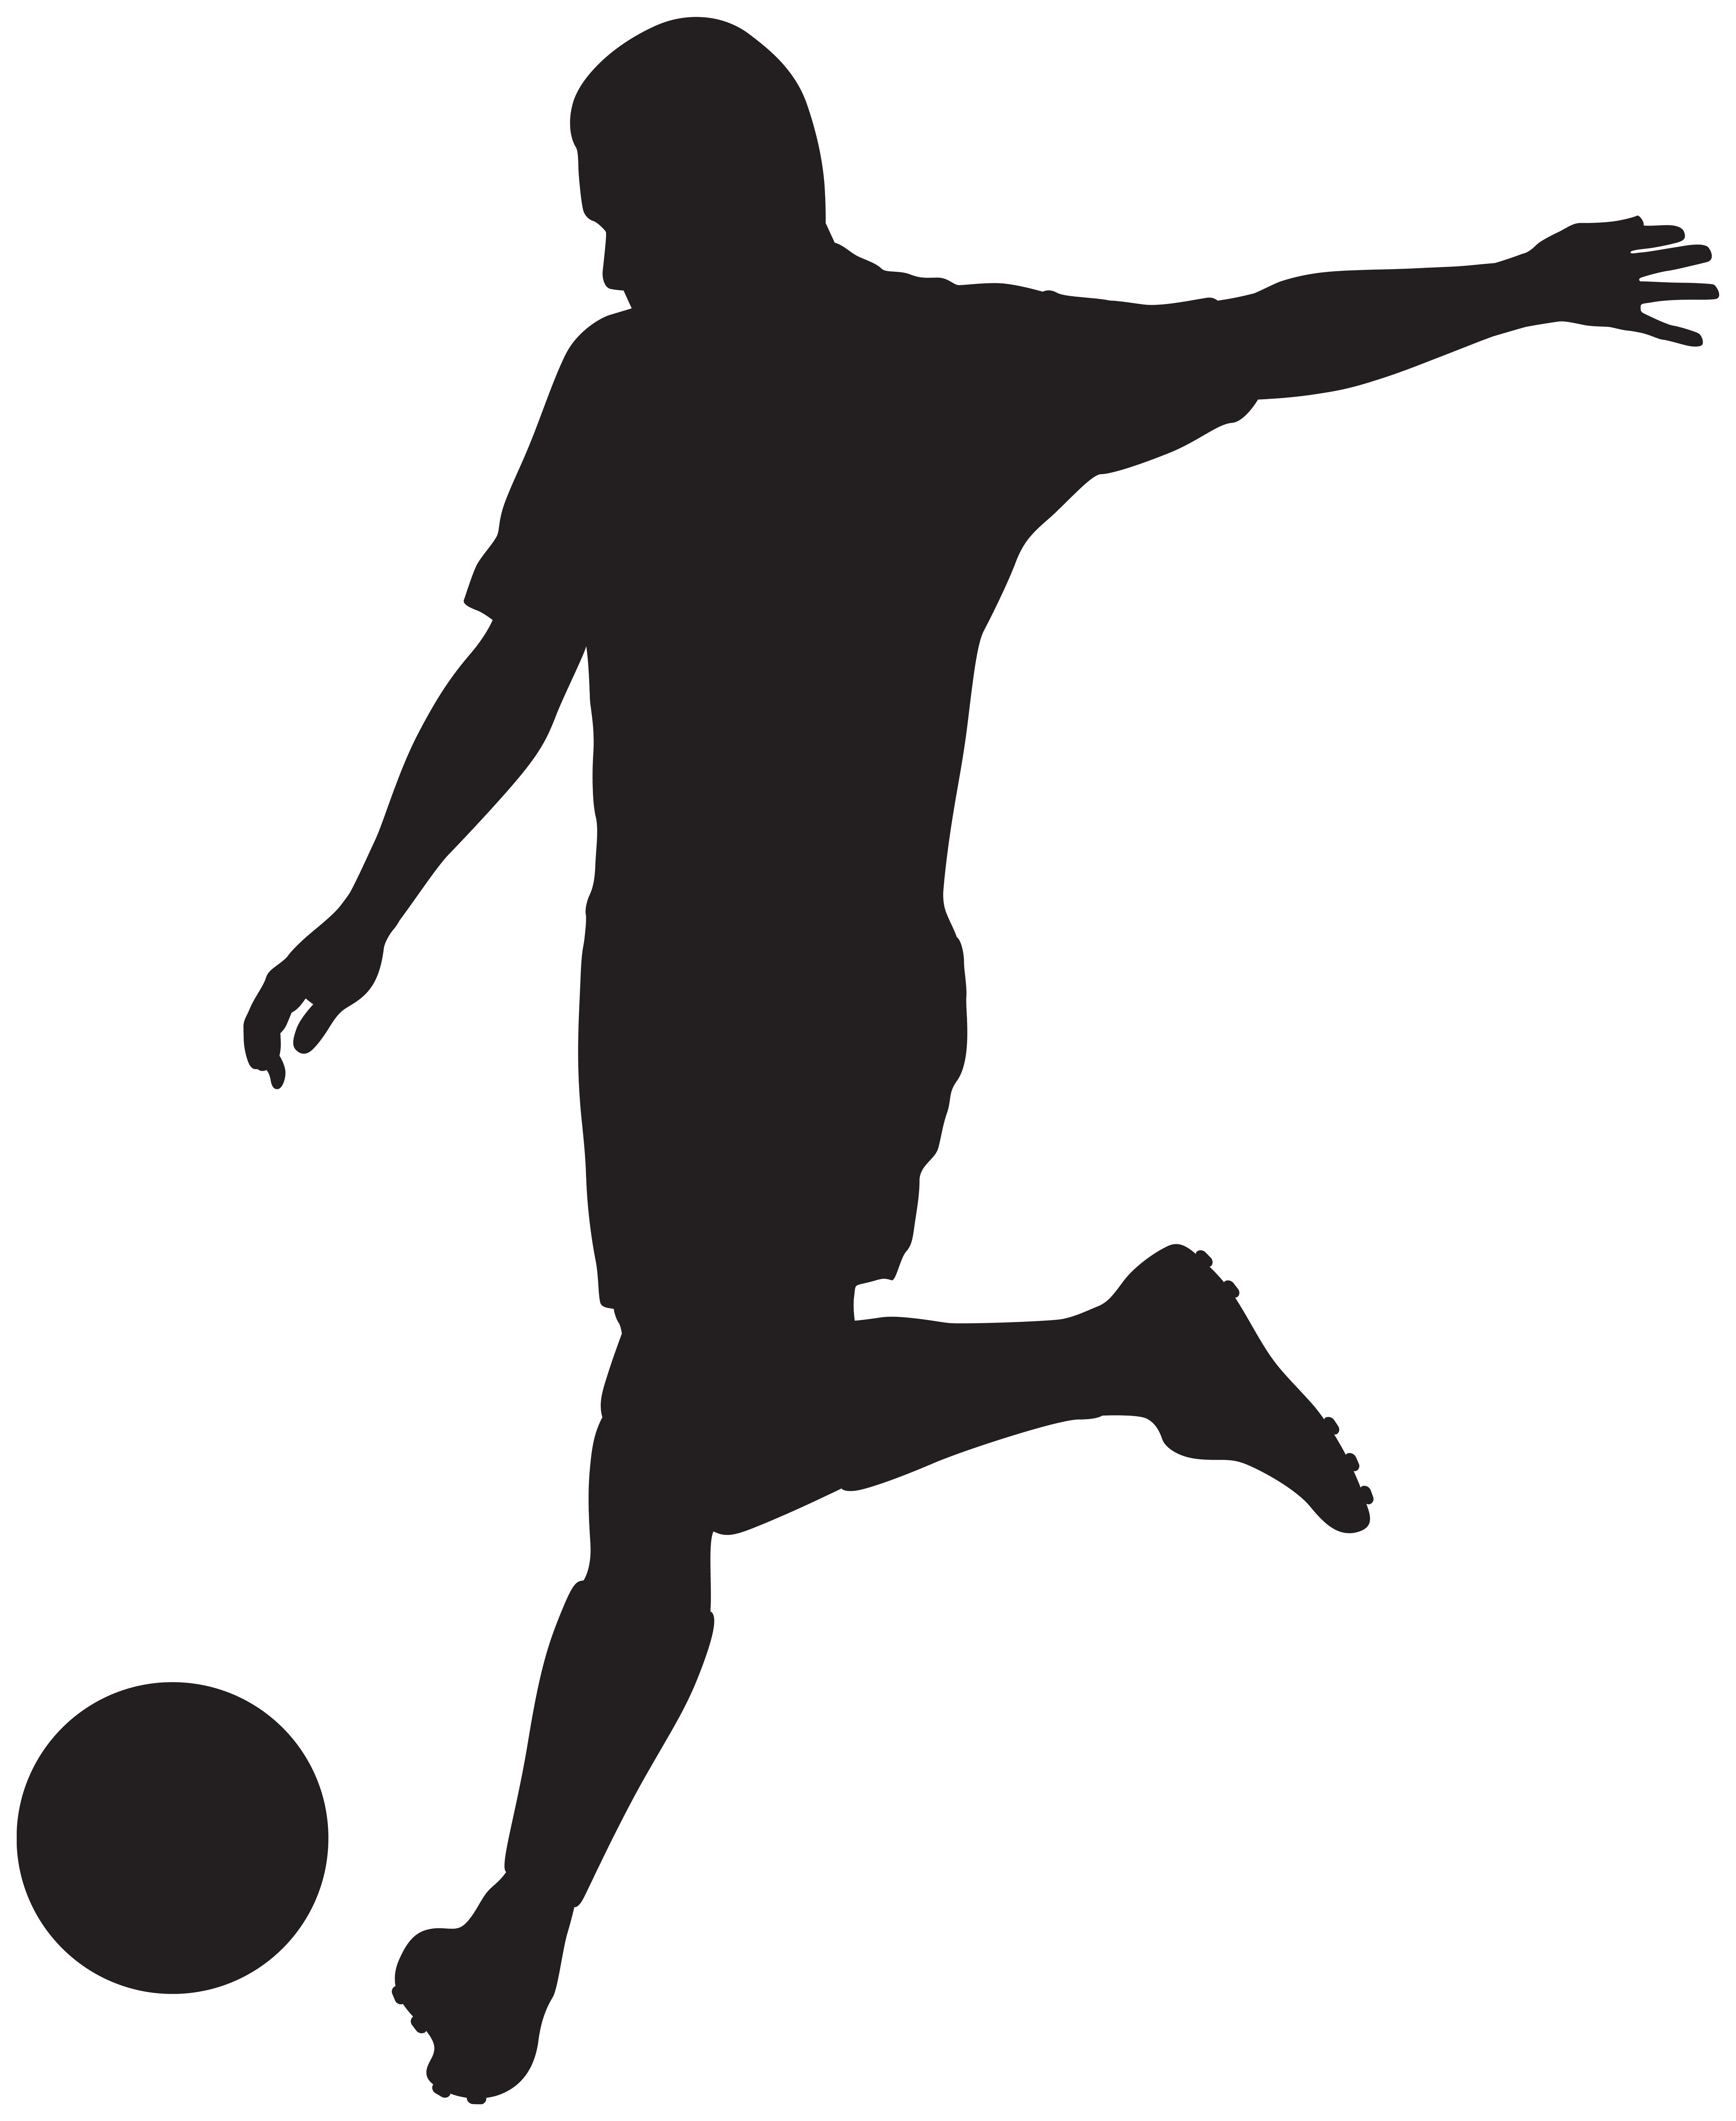 Football Player Silhouette Png In 2020 Football Silhouette Silhouette Silhouette Png